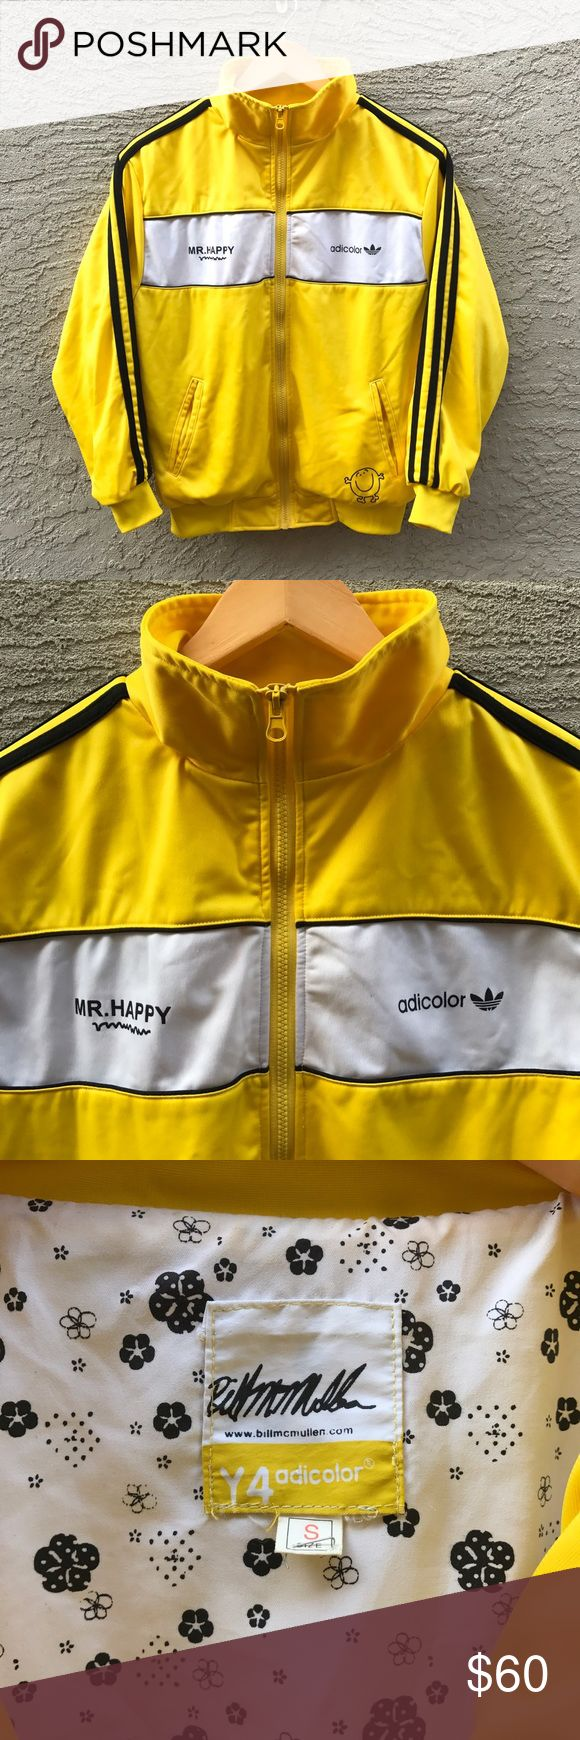 Vintage Adidas adicolor yellow jacket Great condition// adicolor yellow // small // no rips no stains no peeling // yellow track suit jacket // black three stripes// rare find Adidas Jackets & Coats